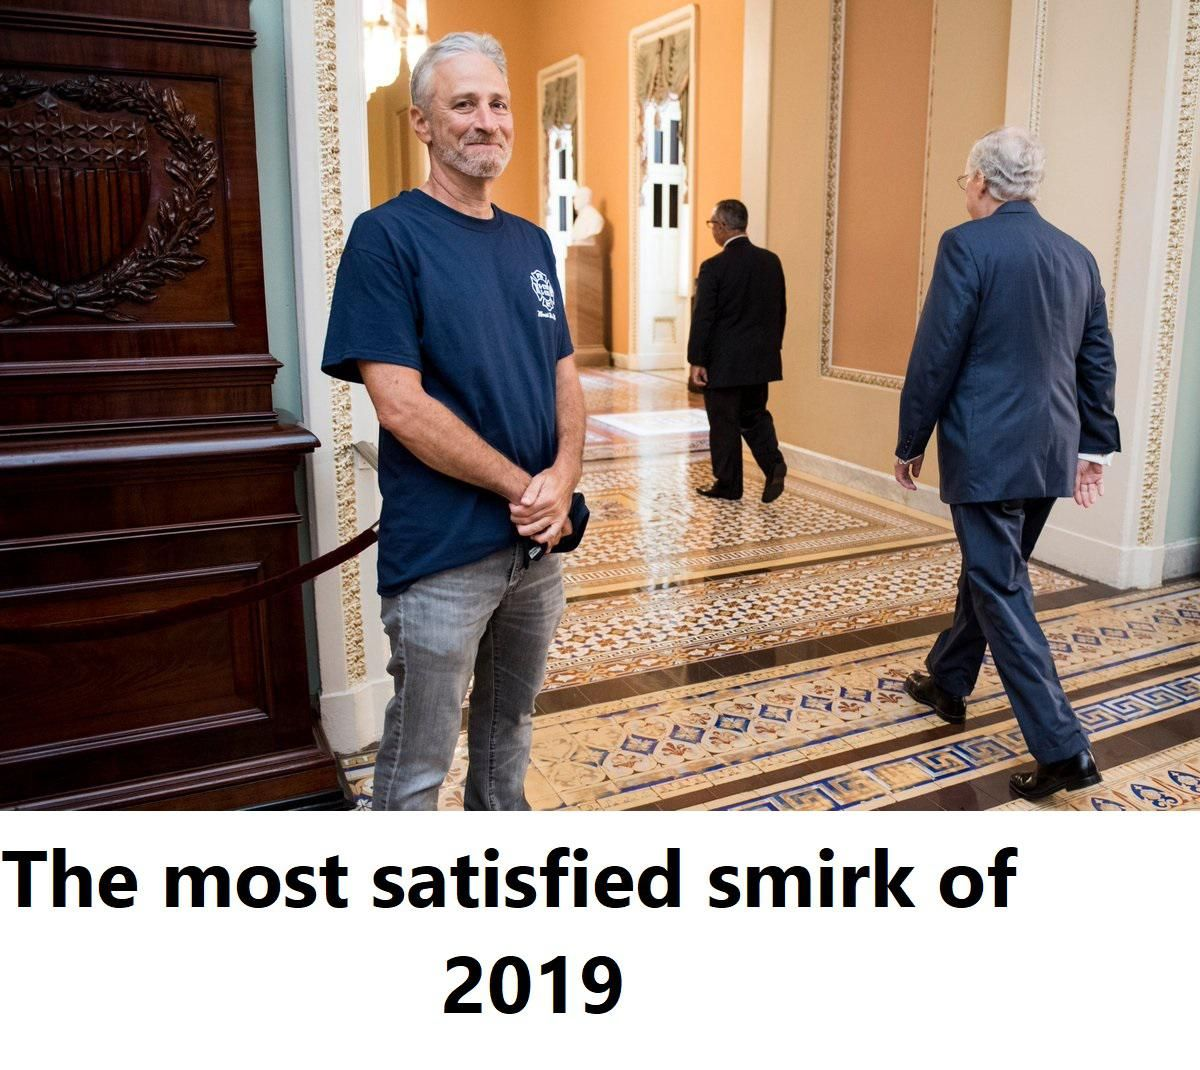 The most satisfied smirk of 2019